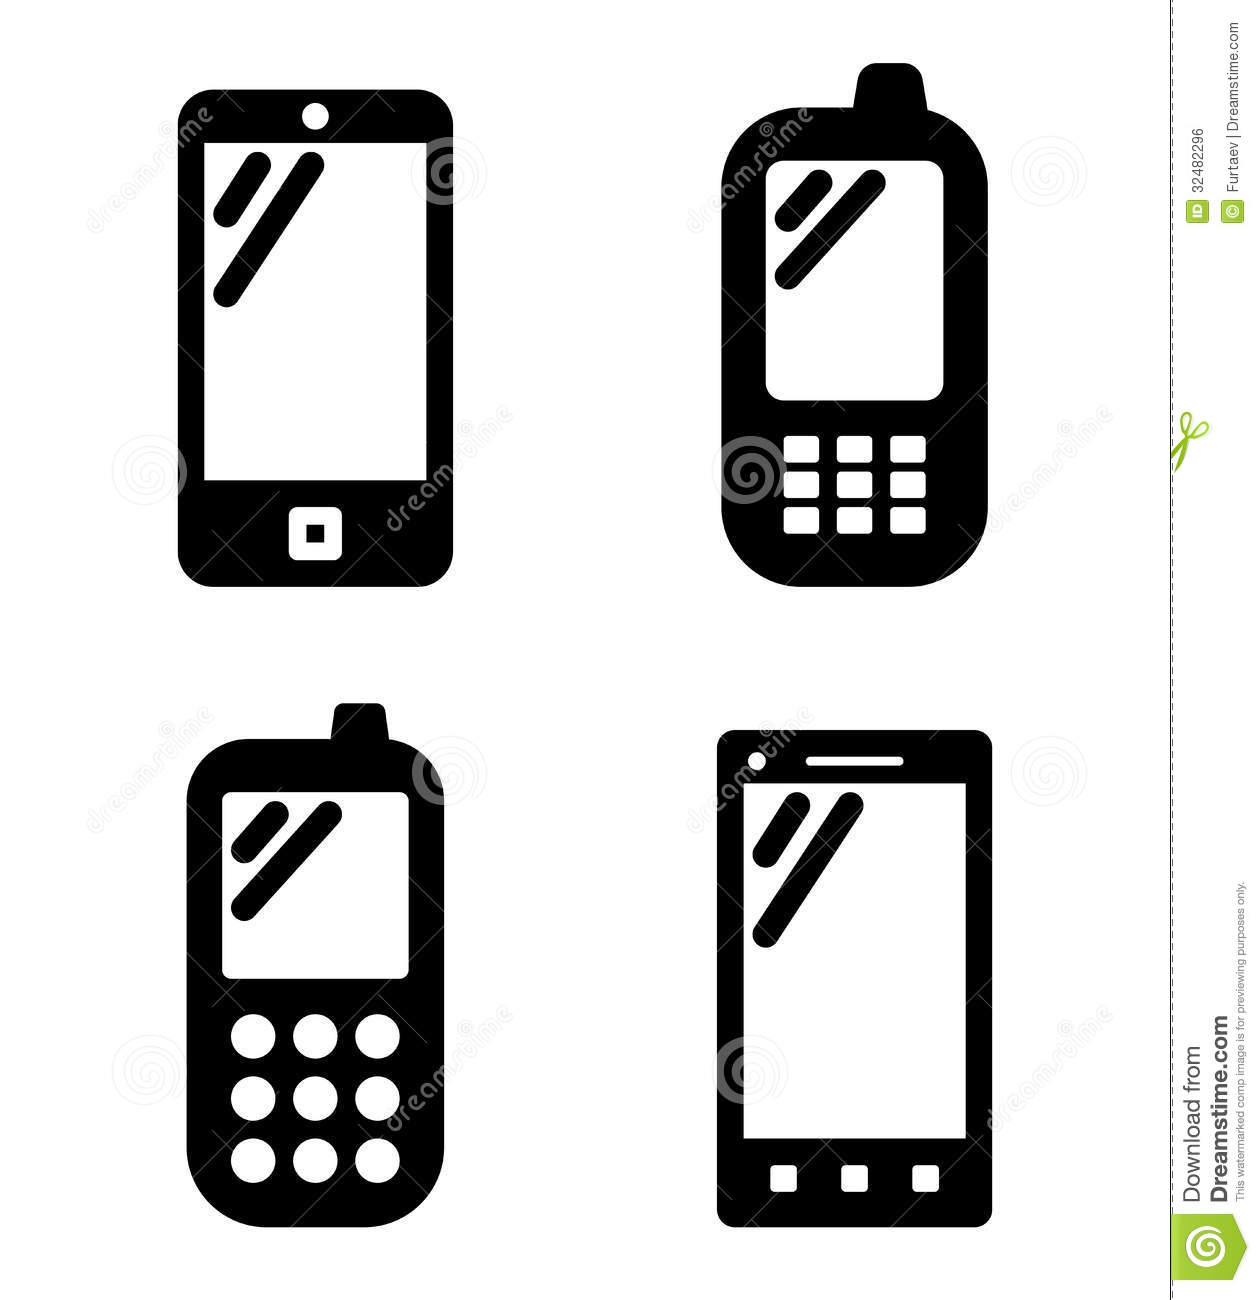 7 Mobile Phone Vector Images